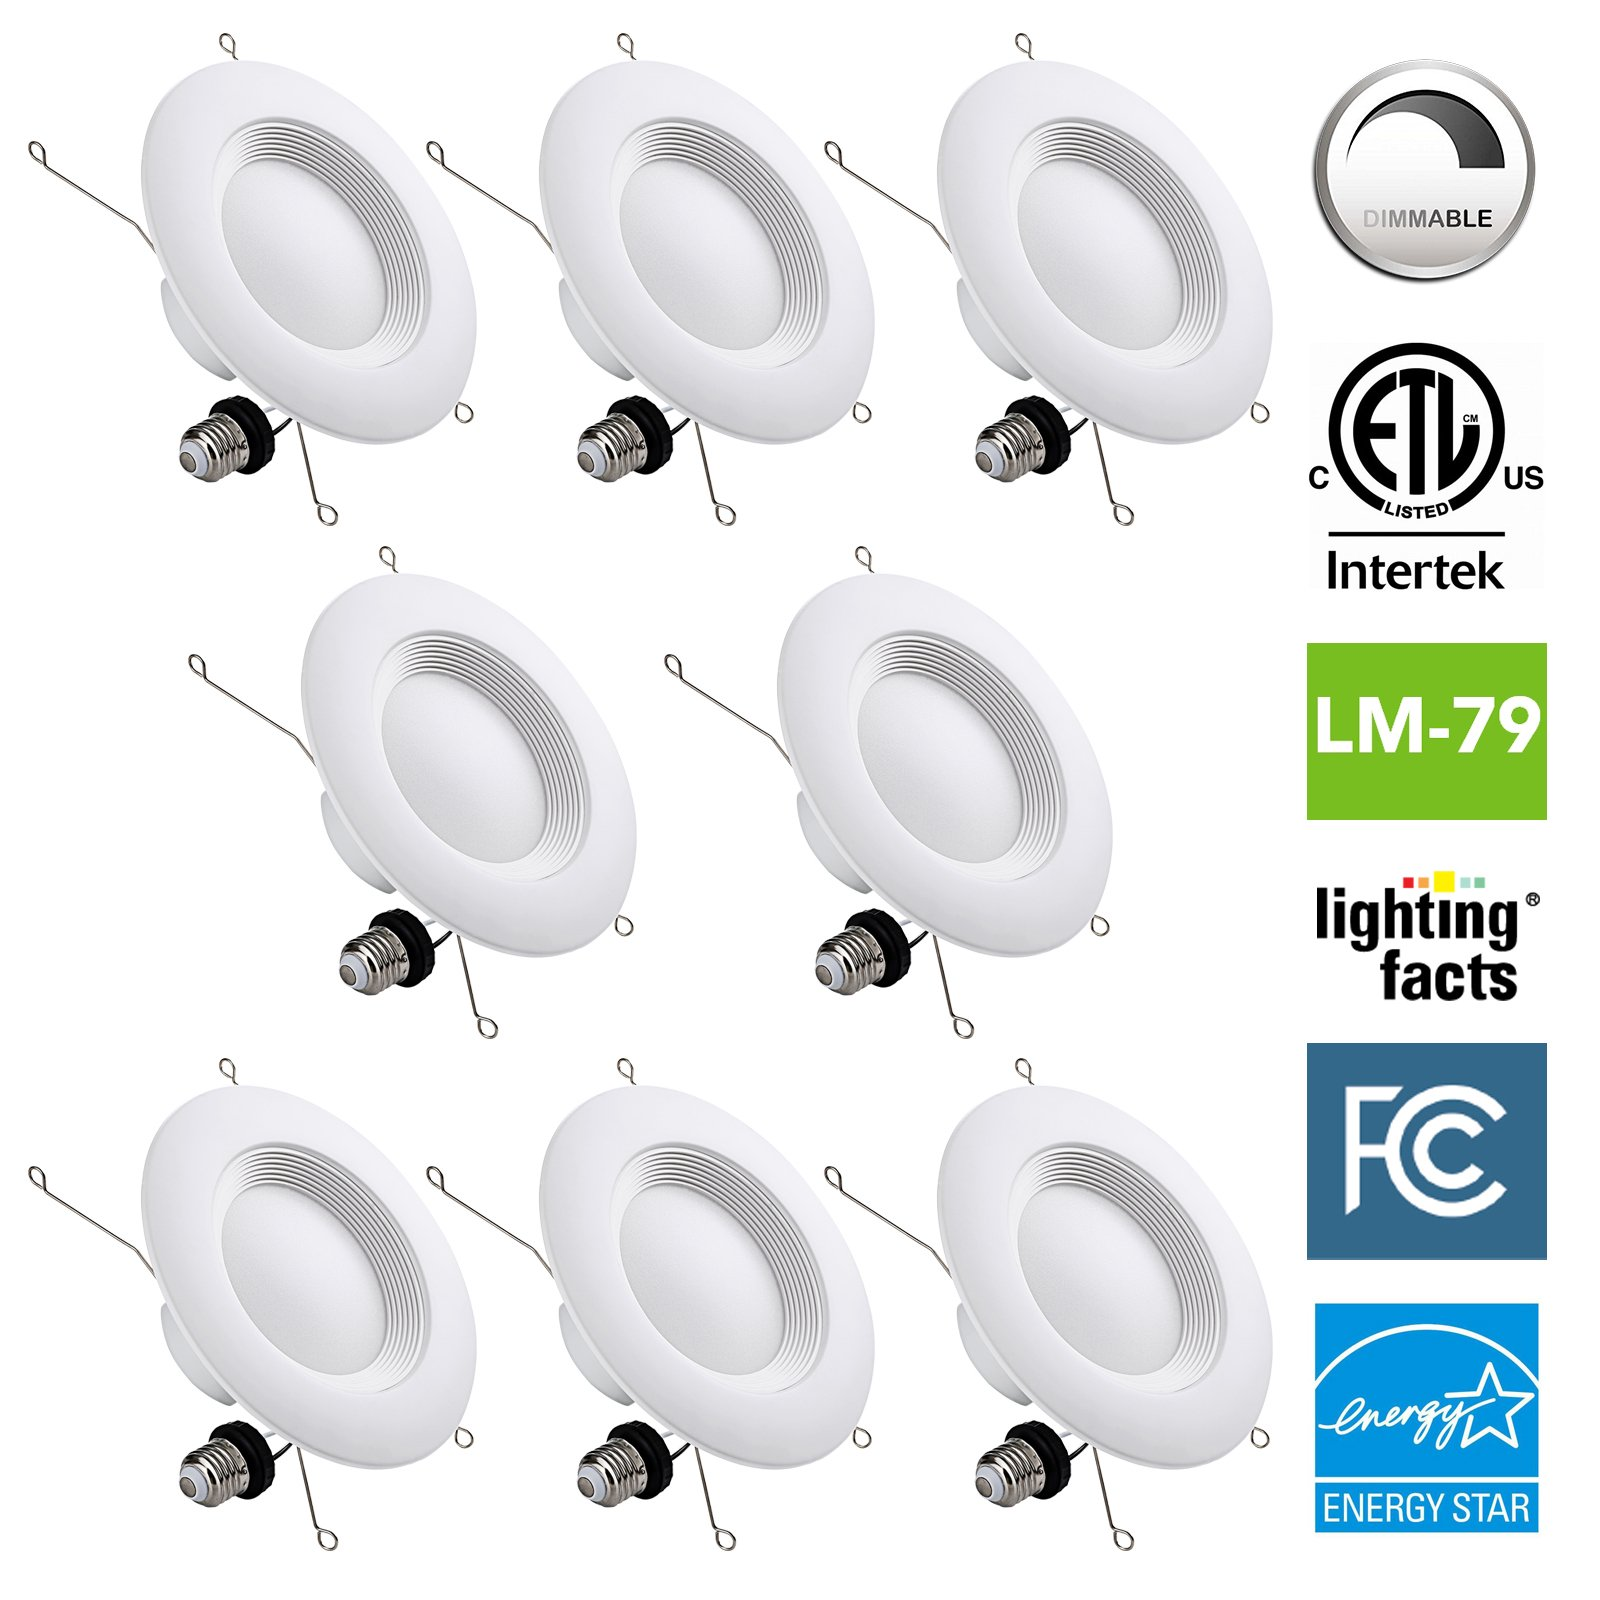 NASUN 5/6 Inch Dimmable LED Downlight, ENERGY STAR, ETL, FCC, 12W, CRI90+, Recessed Retrofit Downlight Lighting Fixture - (Pack of 8), 5 Year Warranty